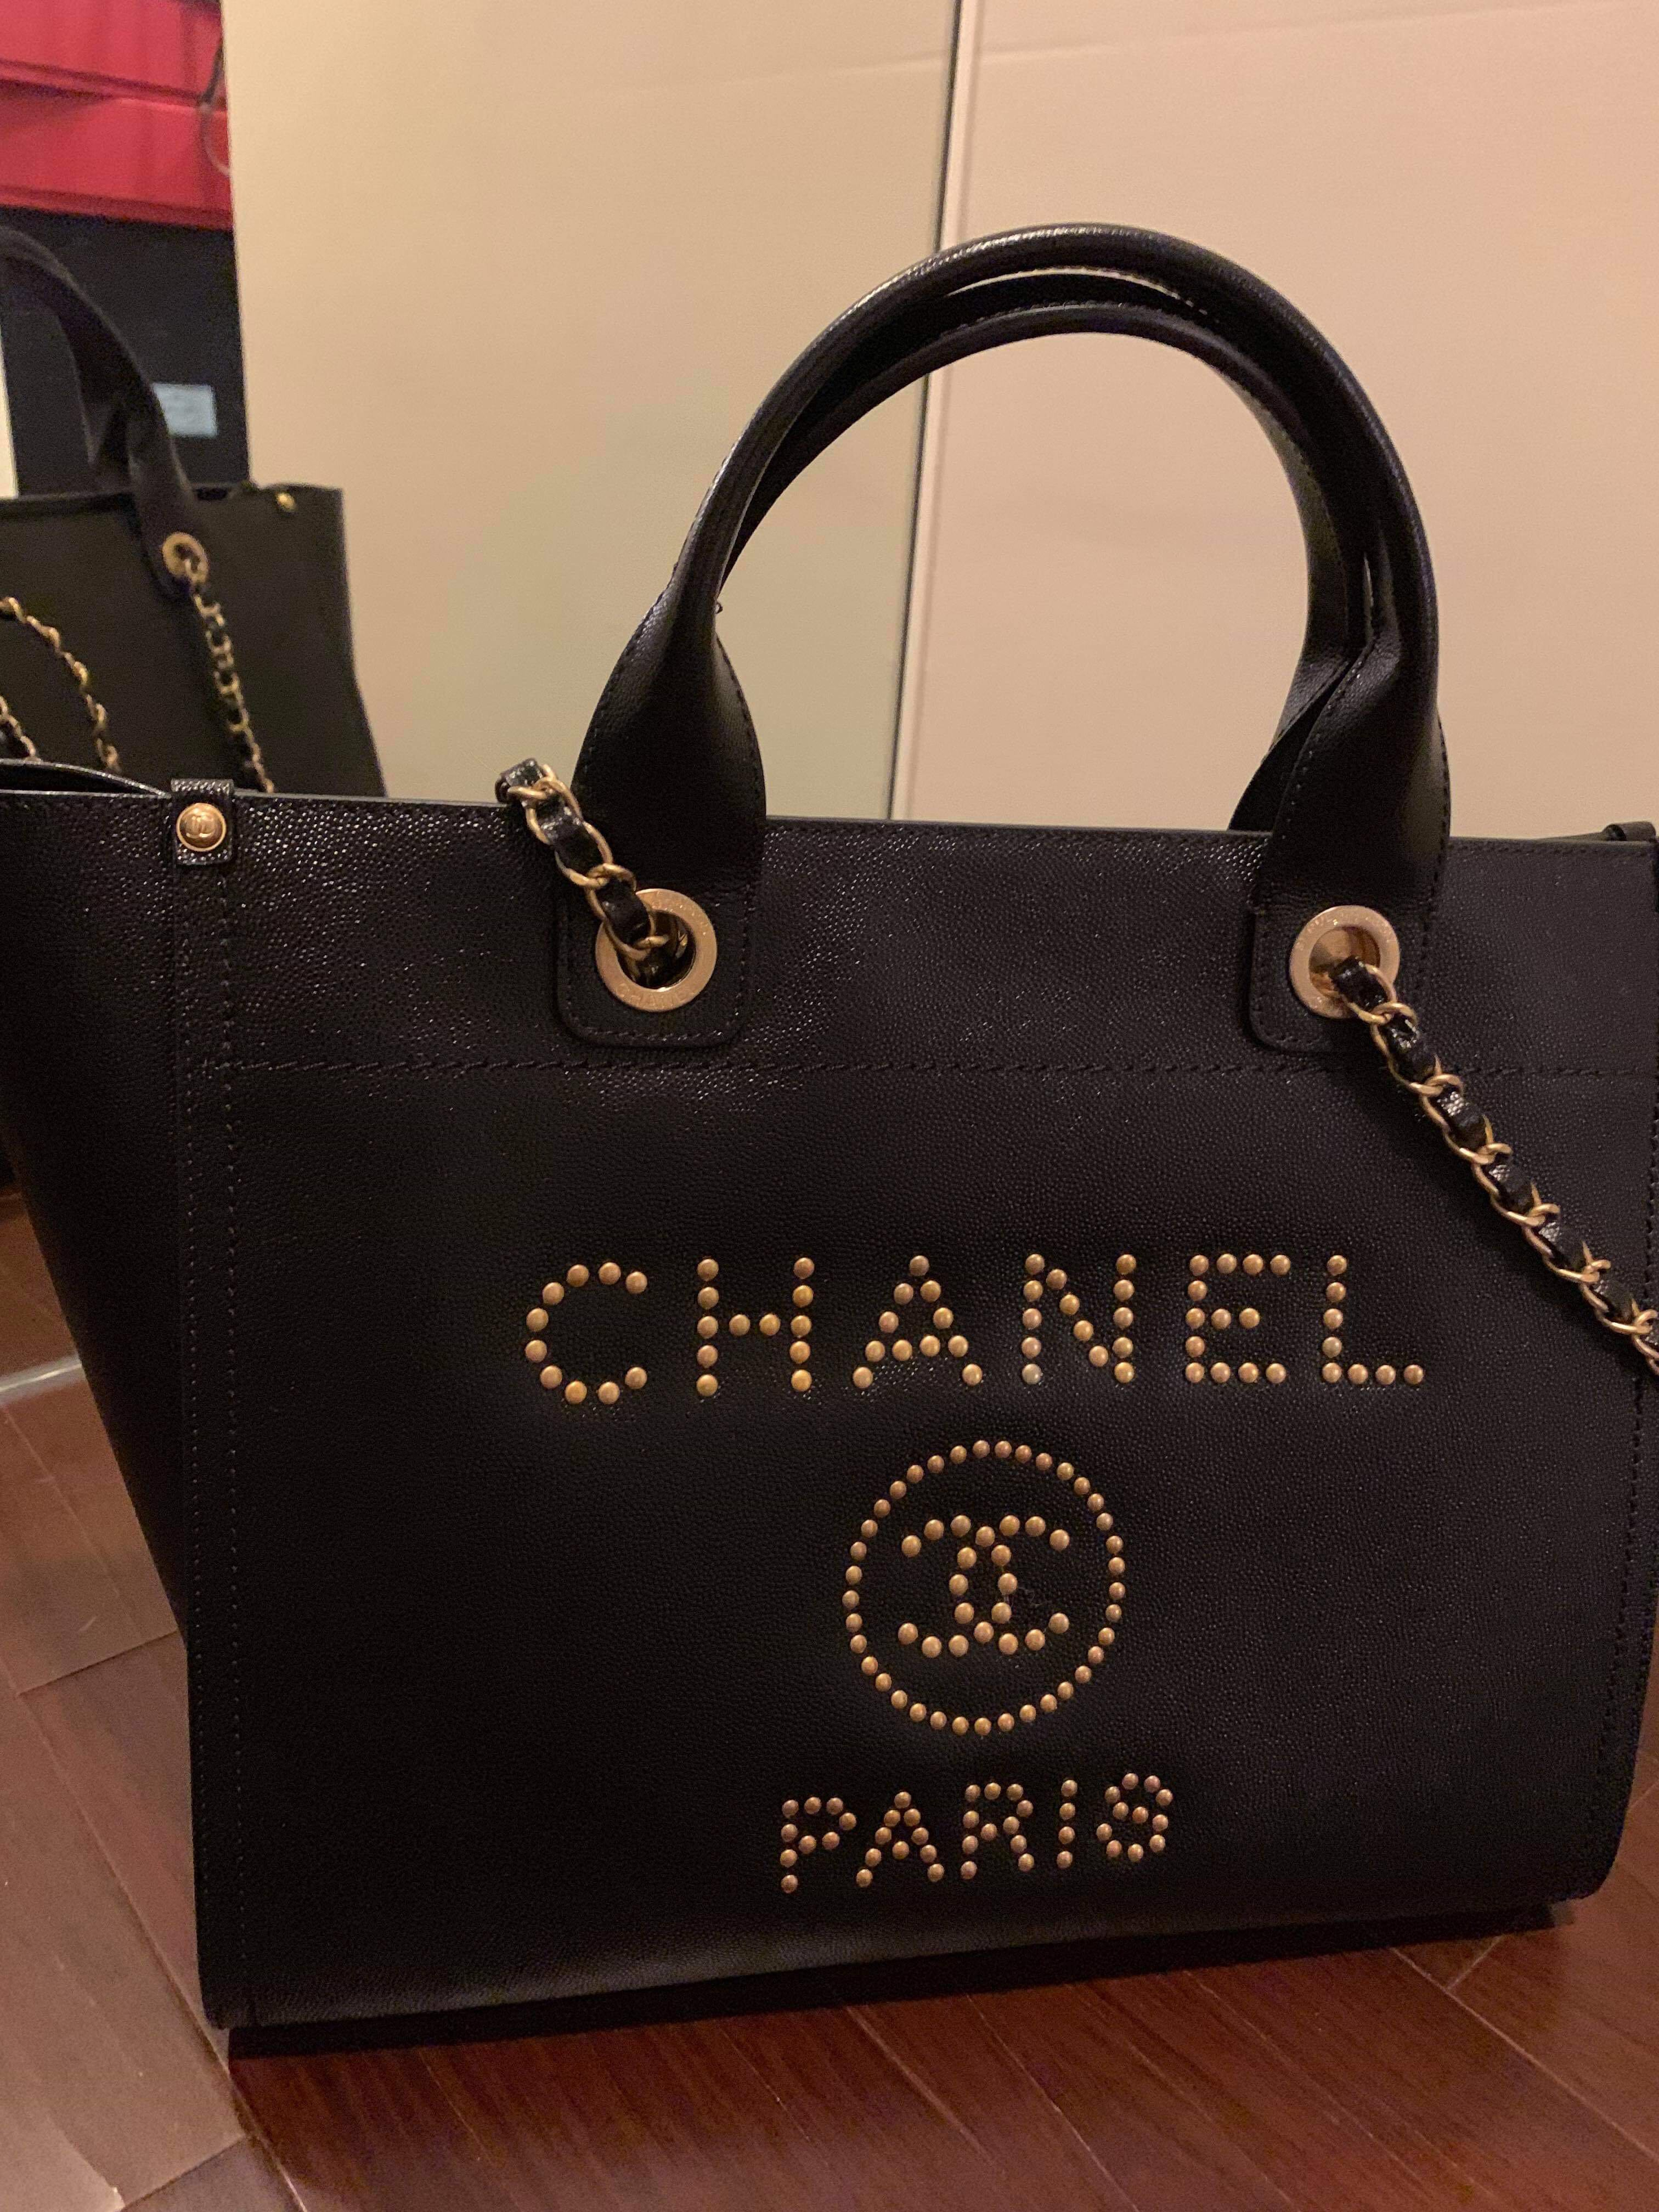 510cf37cf37a Chanel Deauville Tote Bag, Women's Fashion, Bags & Wallets, Handbags on  Carousell